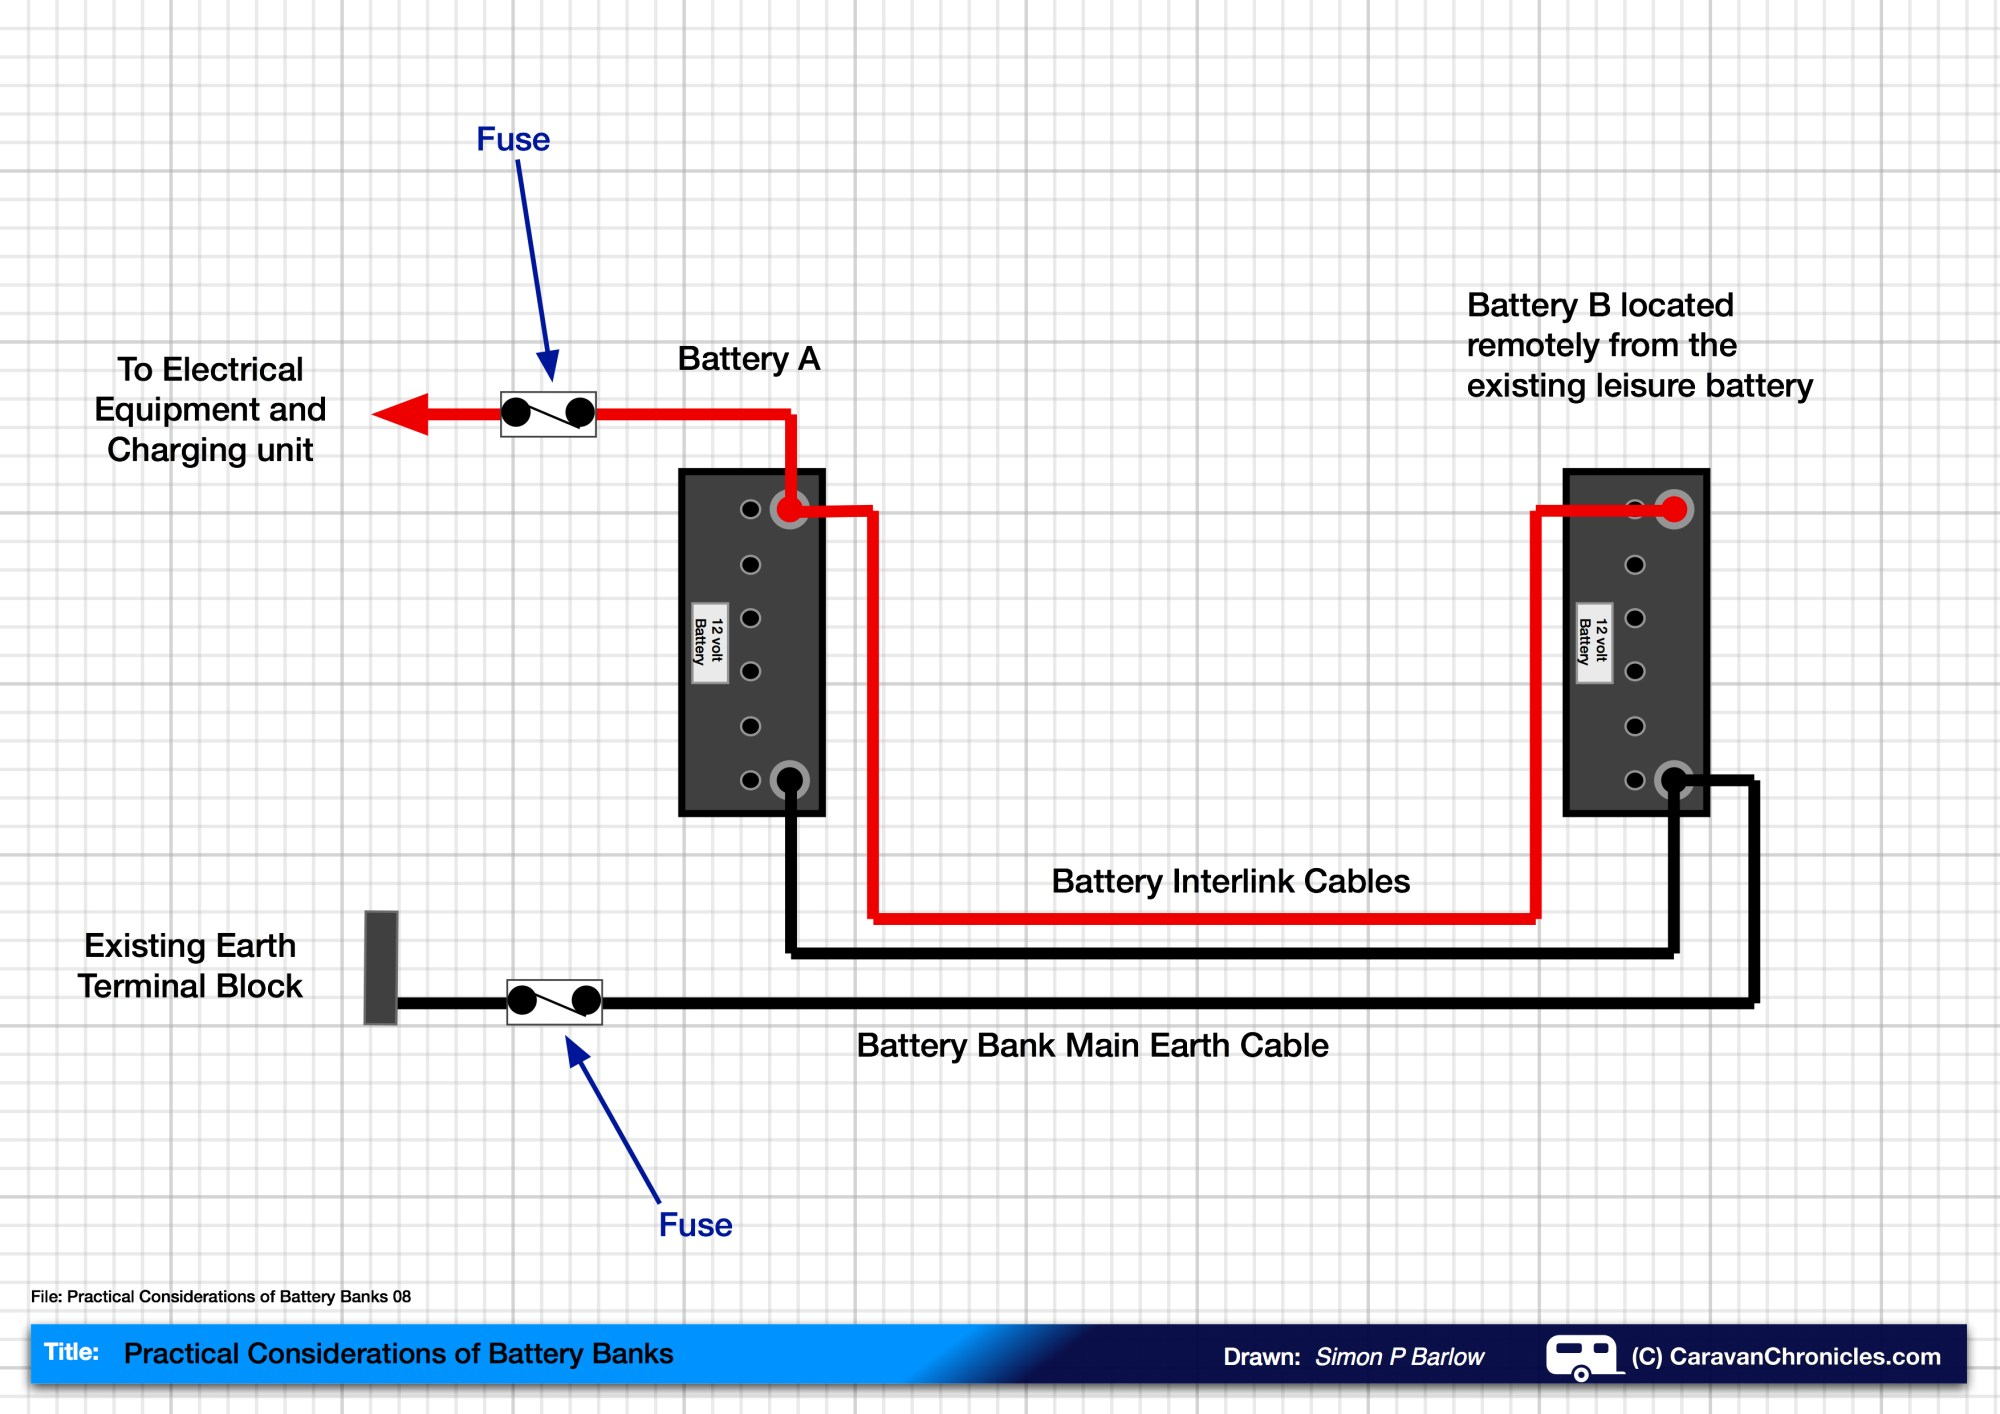 hight resolution of practical considerations of battery banks 08